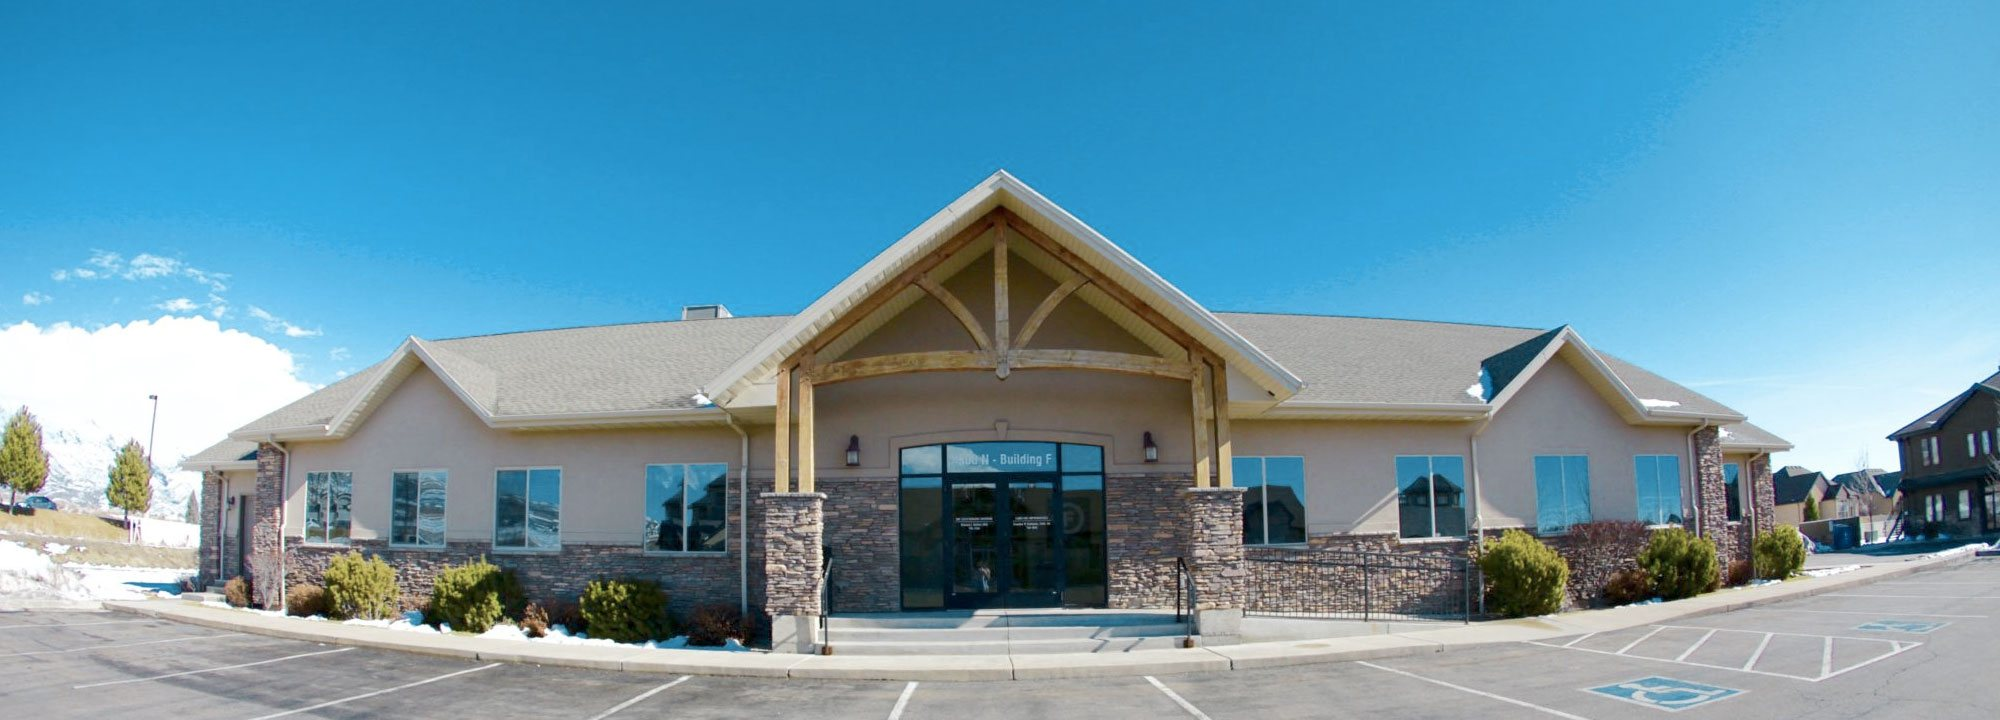 Utah's Top Rated Local® Orthodontists Award Winner: Fairbanks Orthodontics